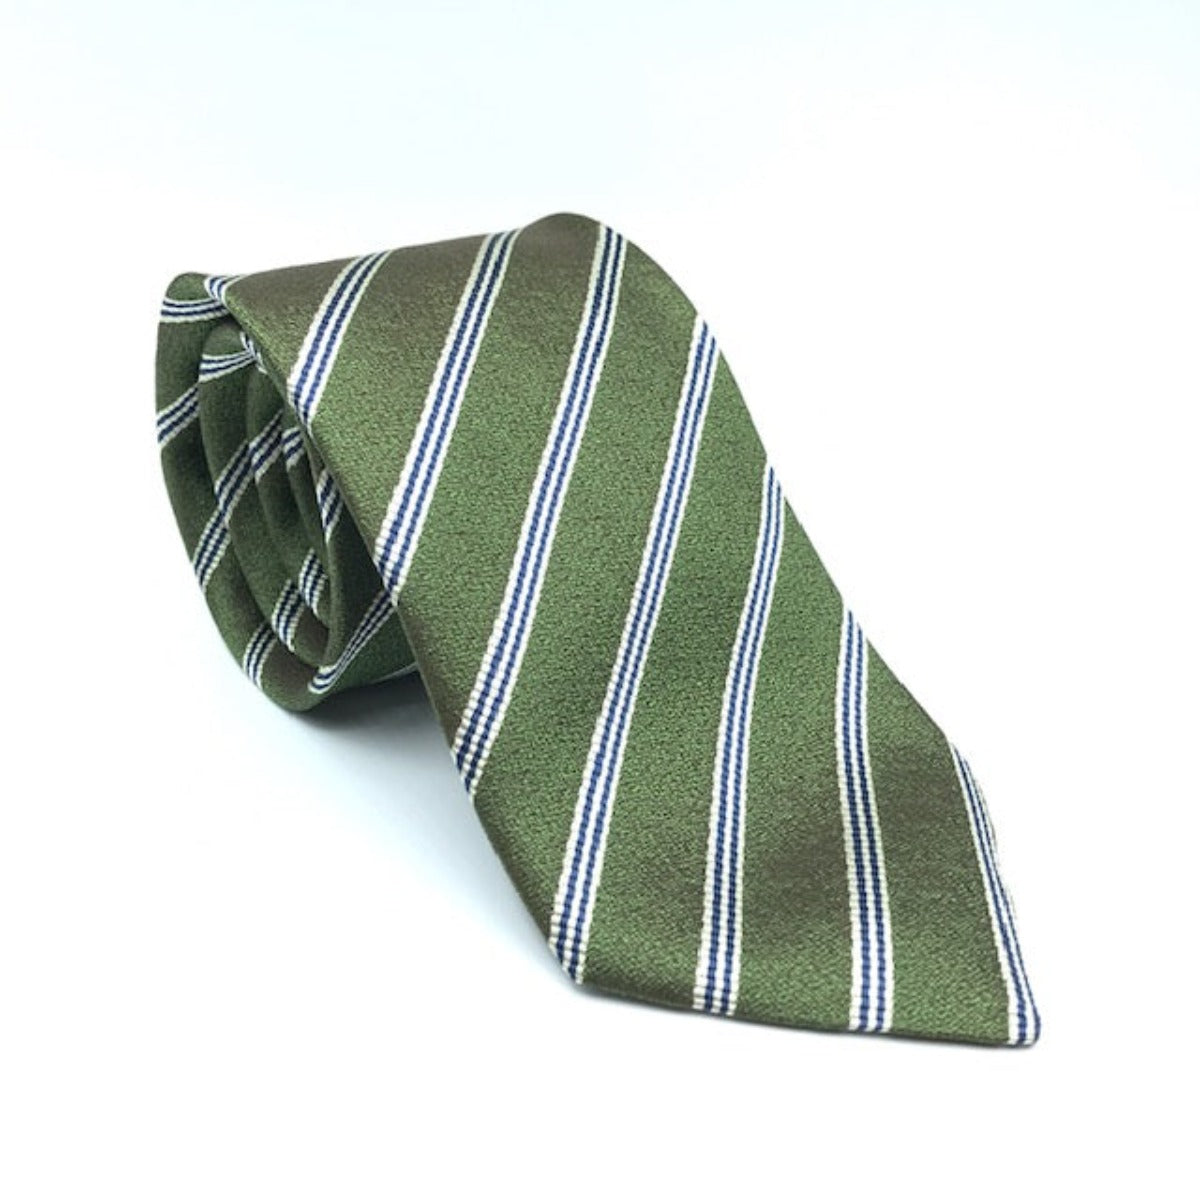 A luxury silk tie designed by and handmade exclusively for Regent. A mossy green is electrified by smart back thin twin lines for a classic yet unusual finish.